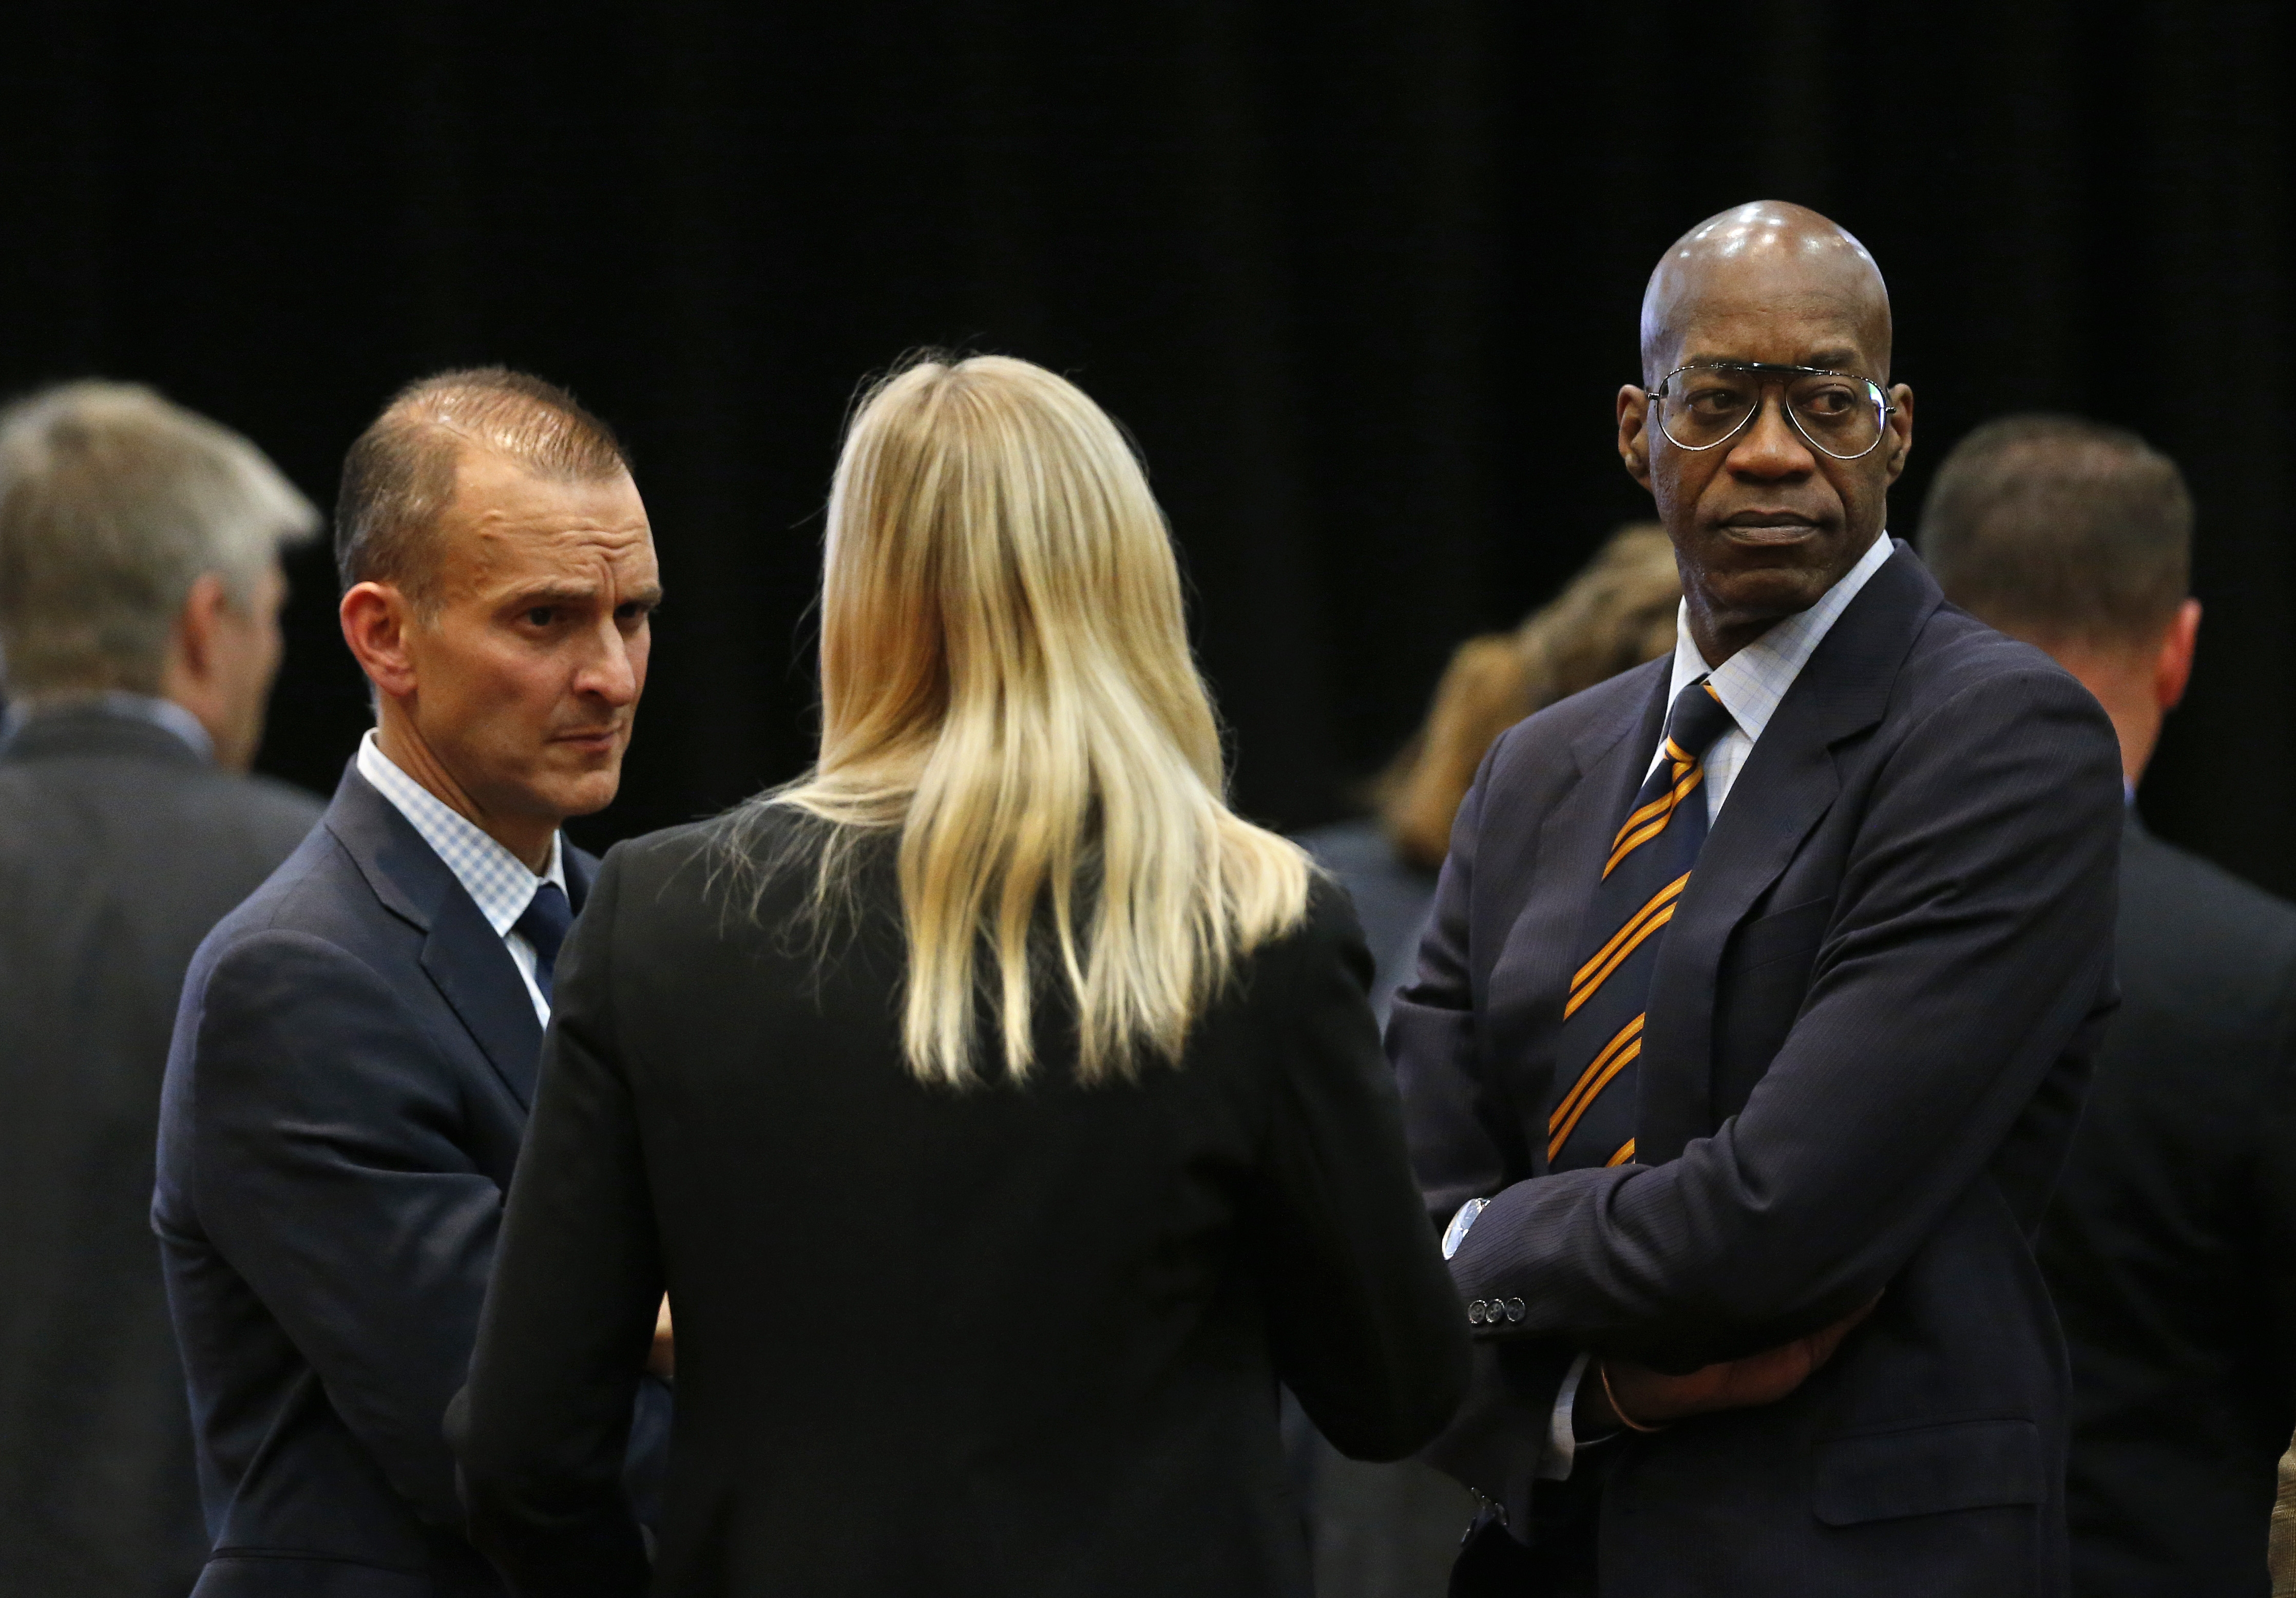 U.S. Olympic track champion Edwin Moses, right, talks with Travis Tygart, CEO of the U.S. Anti-Doping Agency, left, and Zimbabwean Olympic swimmer Kirsty Coventry, during a break in a meeting of the World Anti-Doping Agency (WADA), at the Broadmoor Hotel